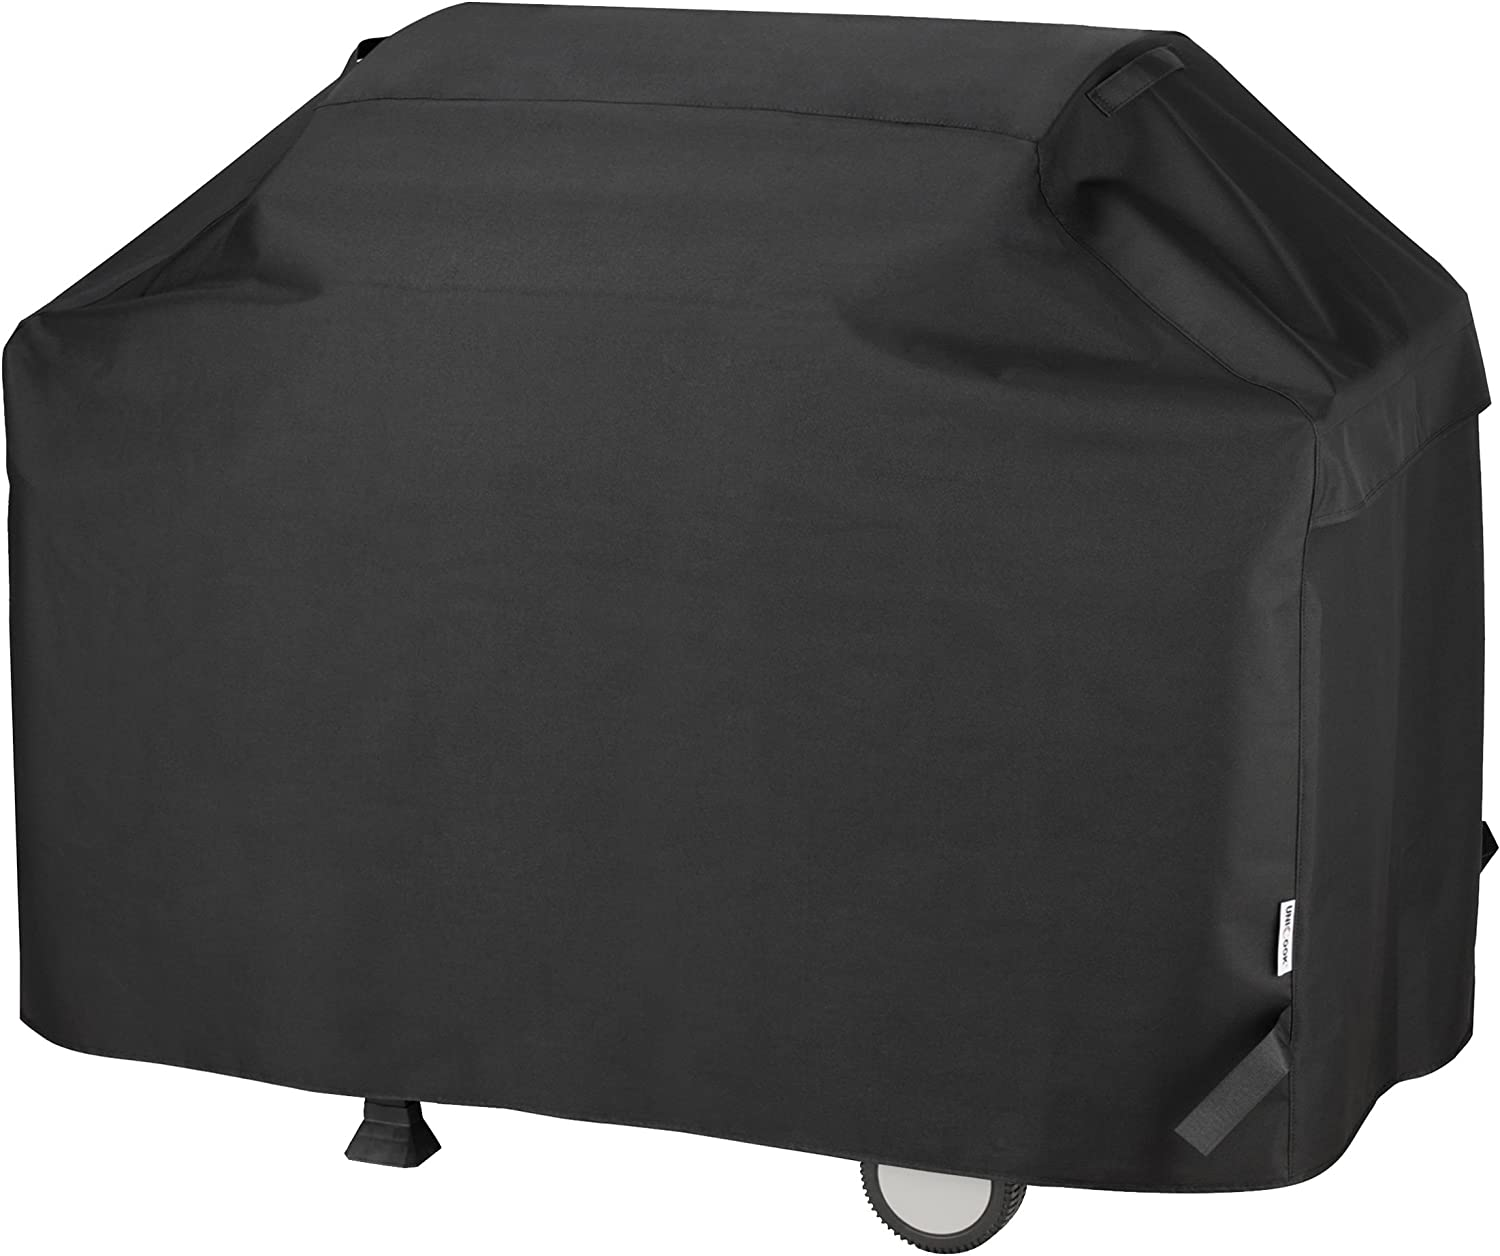 Unicook Heavy Duty Waterproof Barbecue Gas Grill Cover, 65-inch BBQ Cover, Special Fade and UV Resistant Material, Durable and Convenient, Fits Grills of Weber Char-Broil Nexgrill Brinkmann and More : Garden & Outdoor